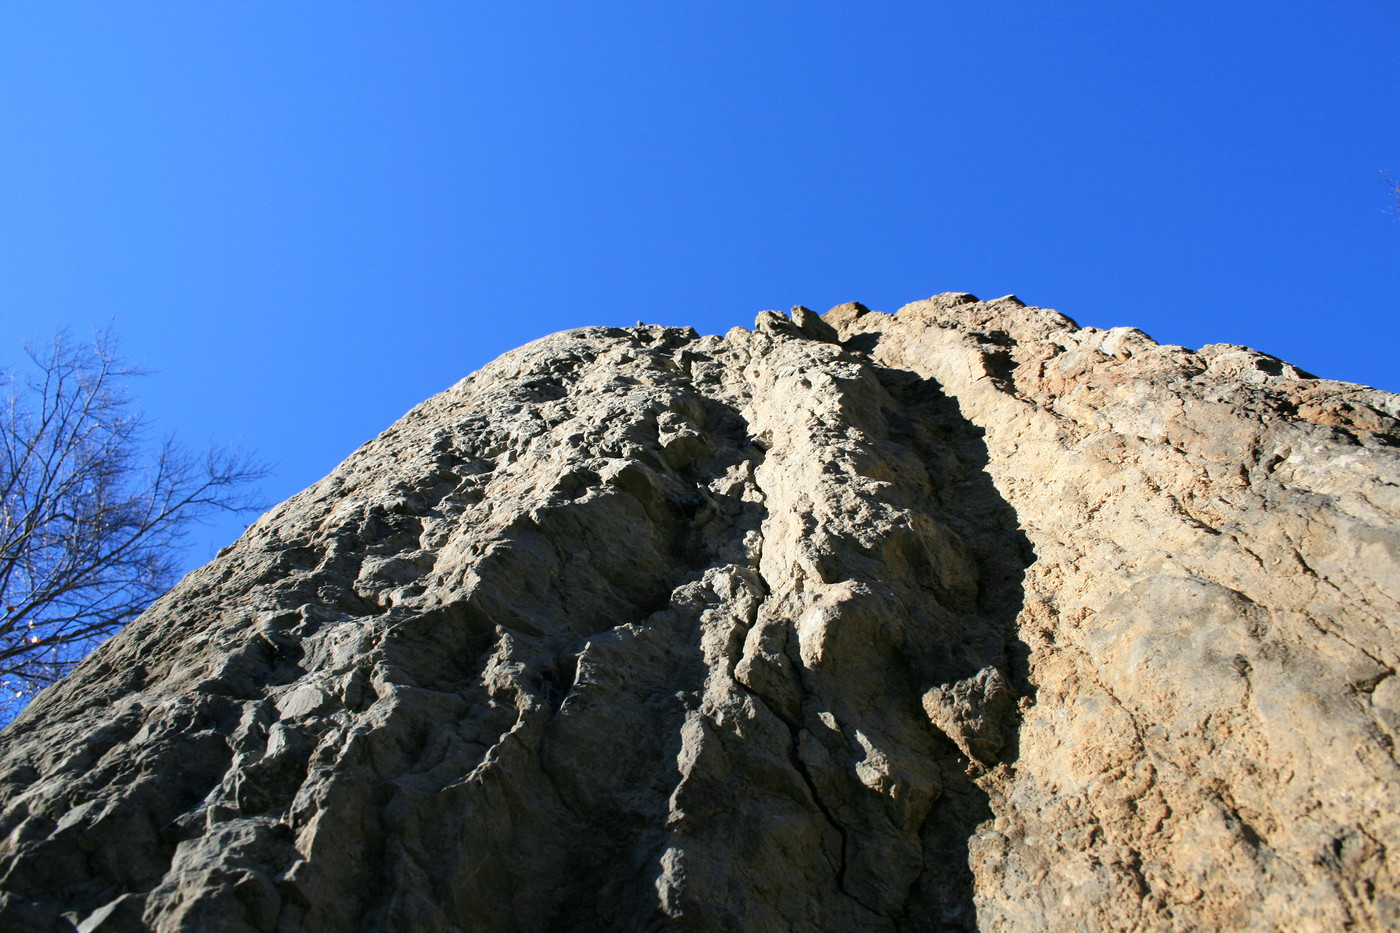 Tall Rock and Sky